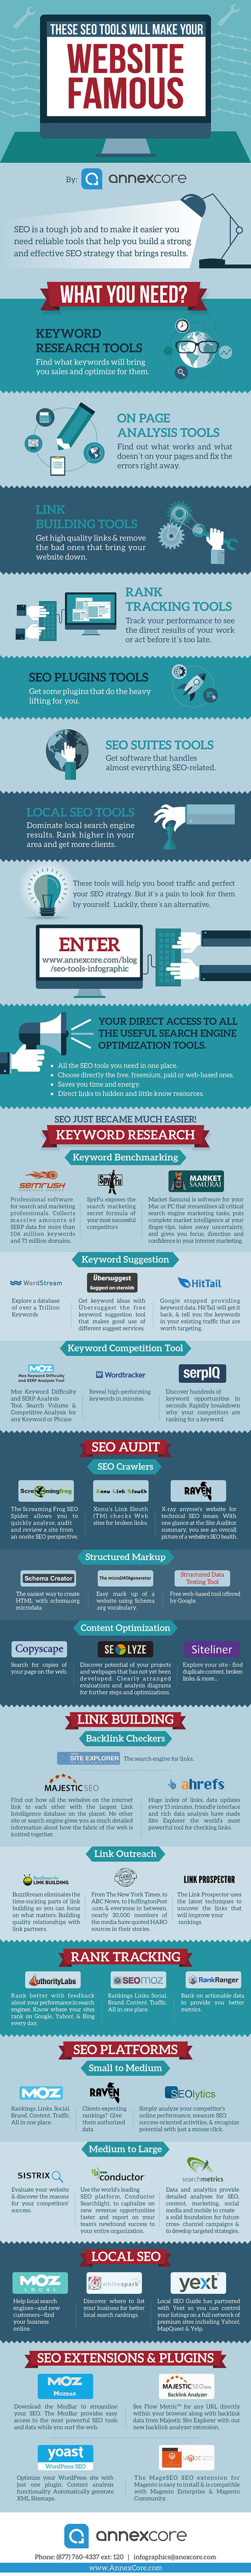 These SEO Tools Will Make Your Website Famous [Infographic] | infografias - infographics | Scoop.it